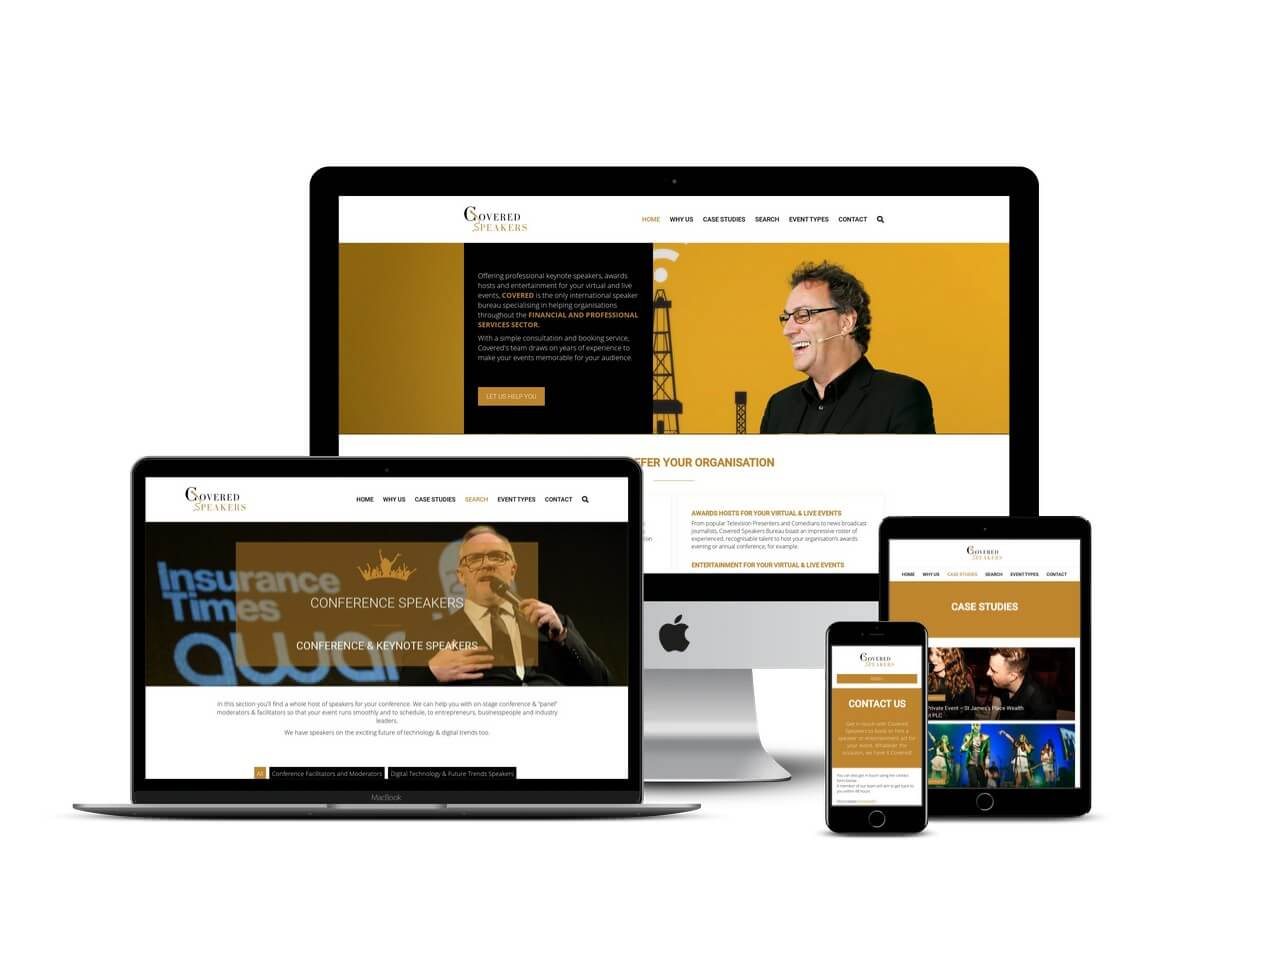 covered speakers website design